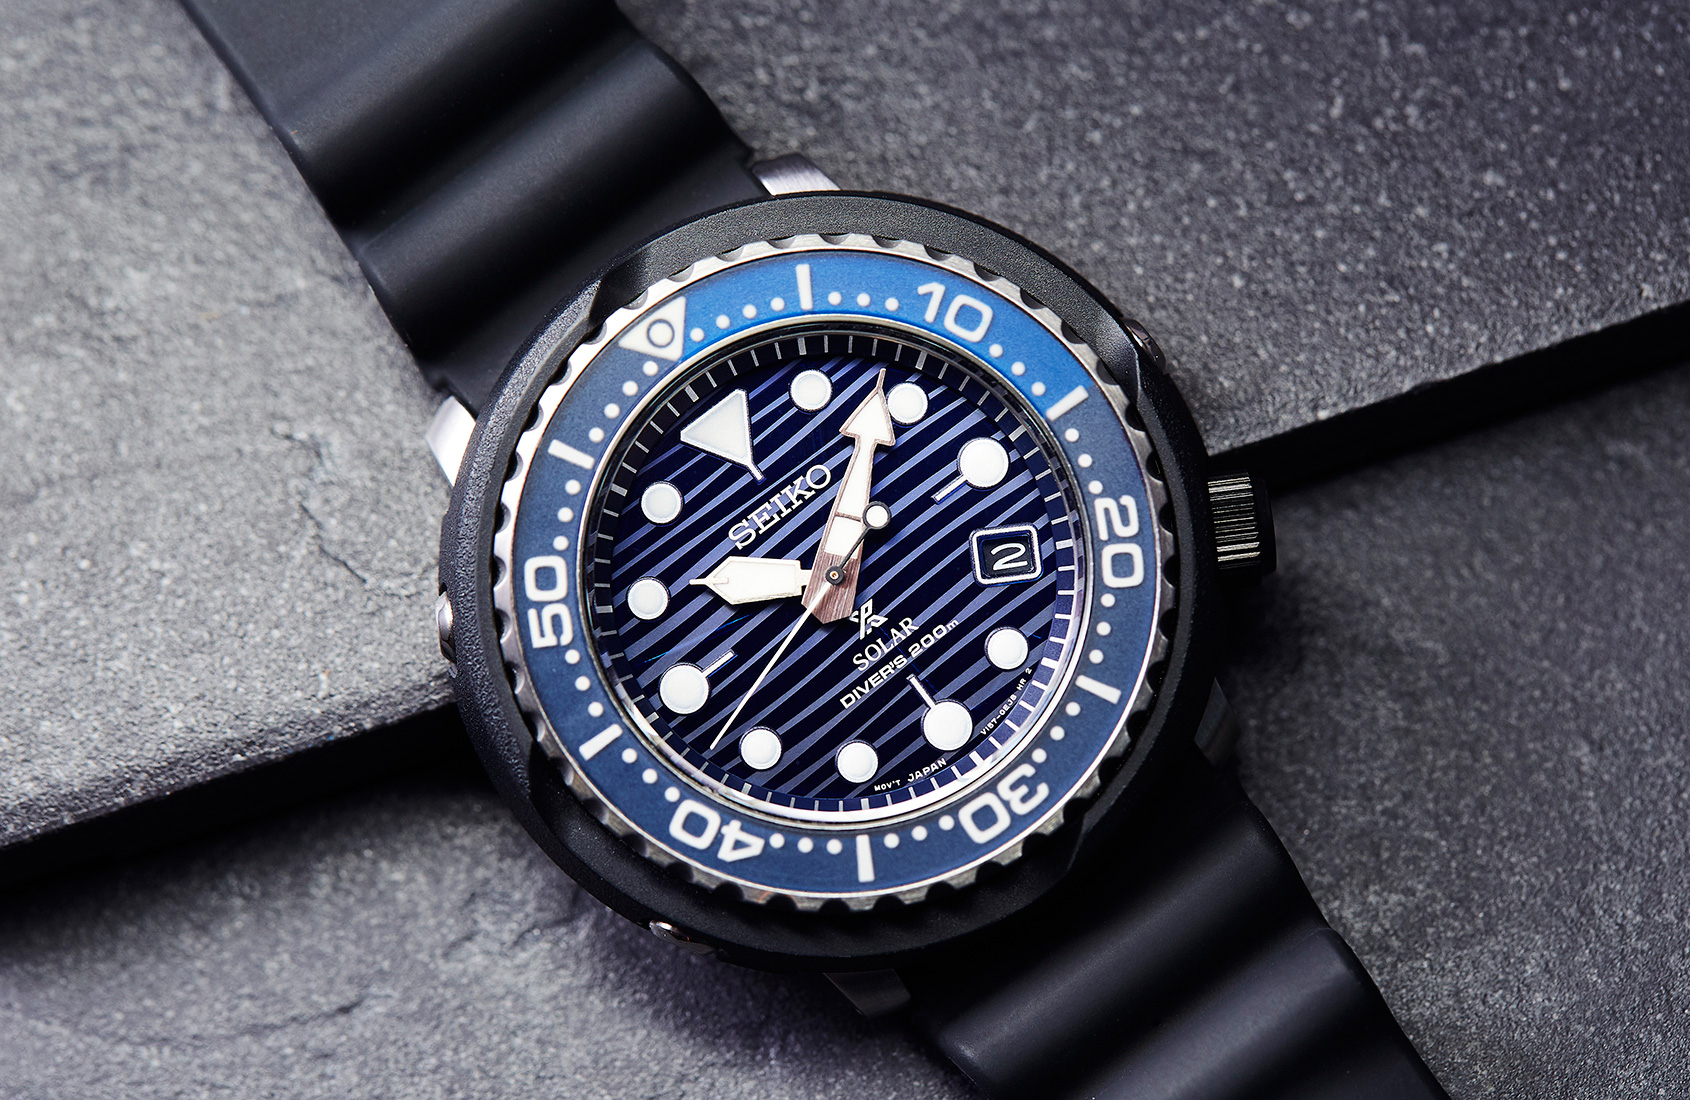 HANDS-ON: Seiko's Save The Ocean — Tuna style — with the Prospex